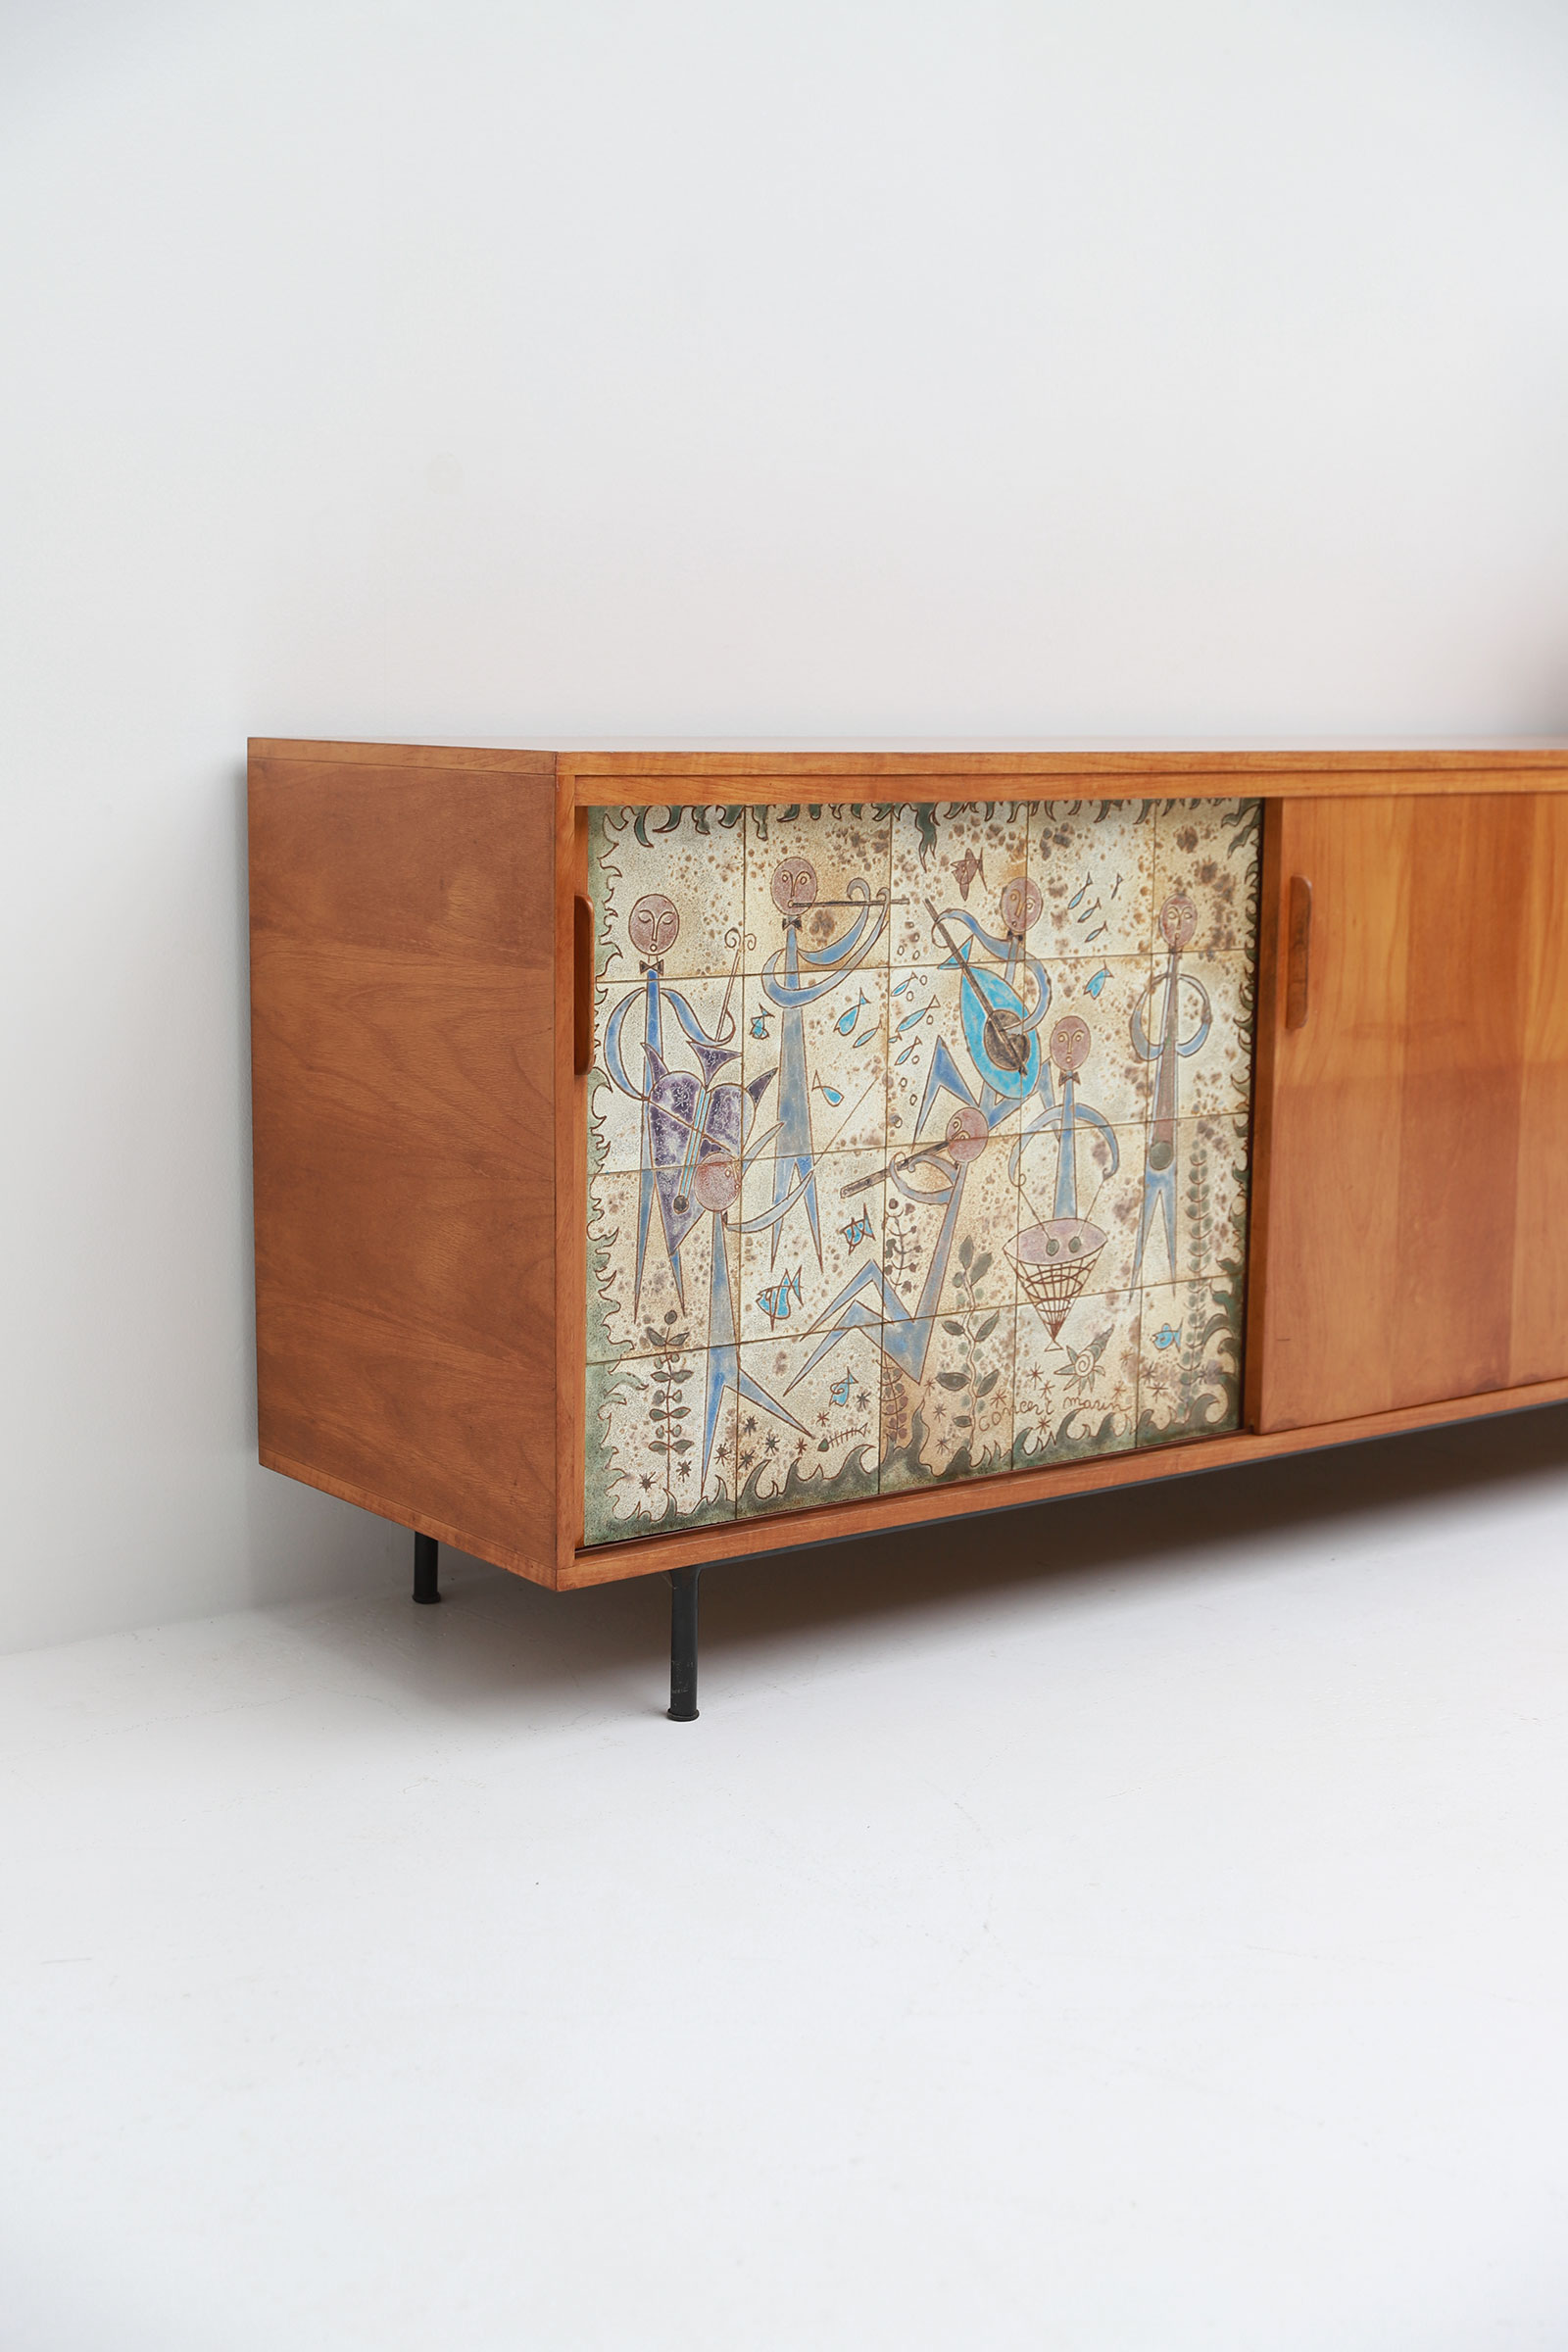 Sideboard with Ceramic Tiles Charles-Emile Pinson 1958image 10